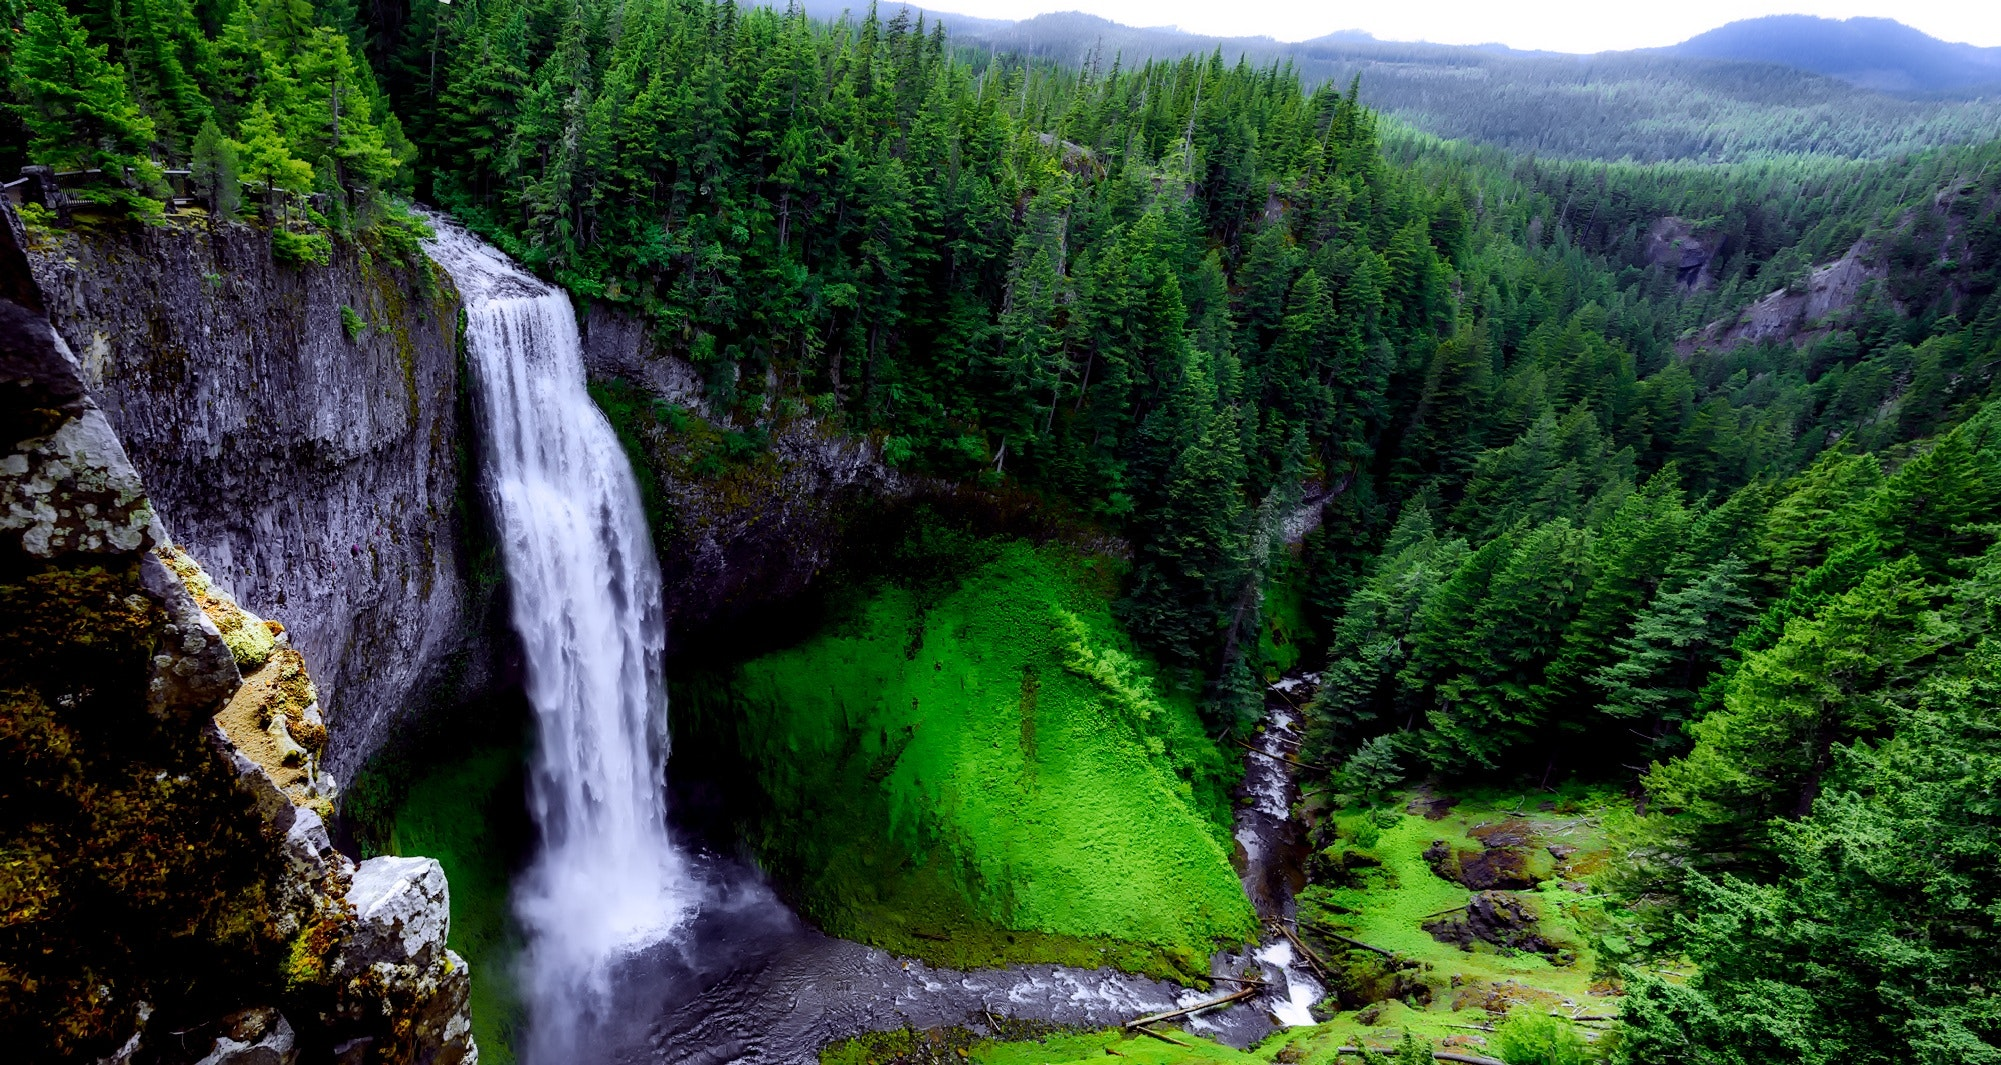 The Most Beautiful Natural Waterfalls in the